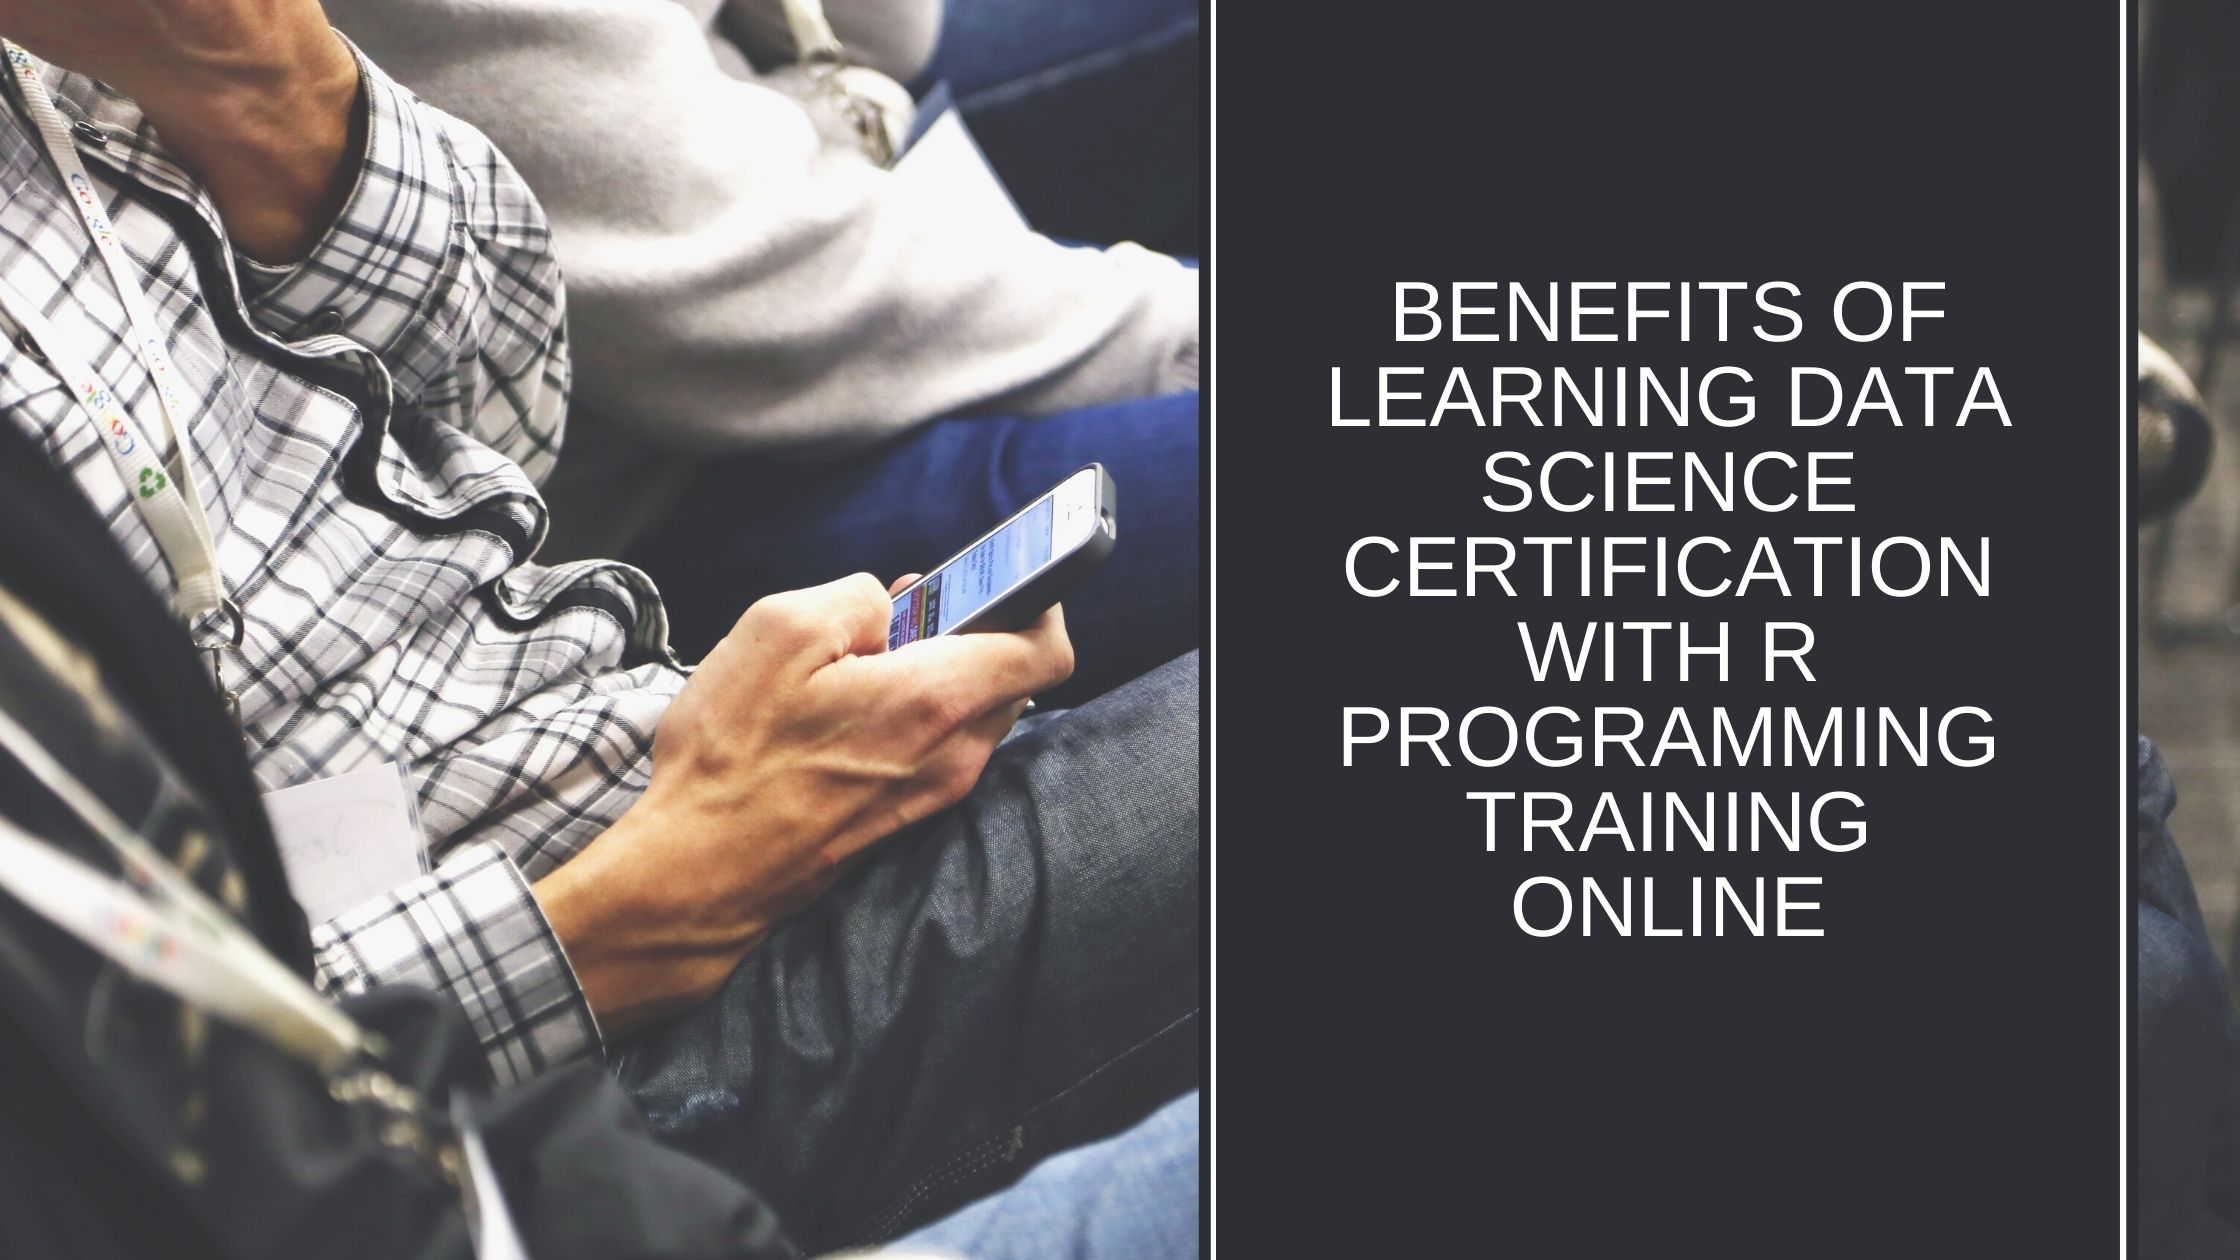 Benefits of learning Data Science Certification with R Programming Training